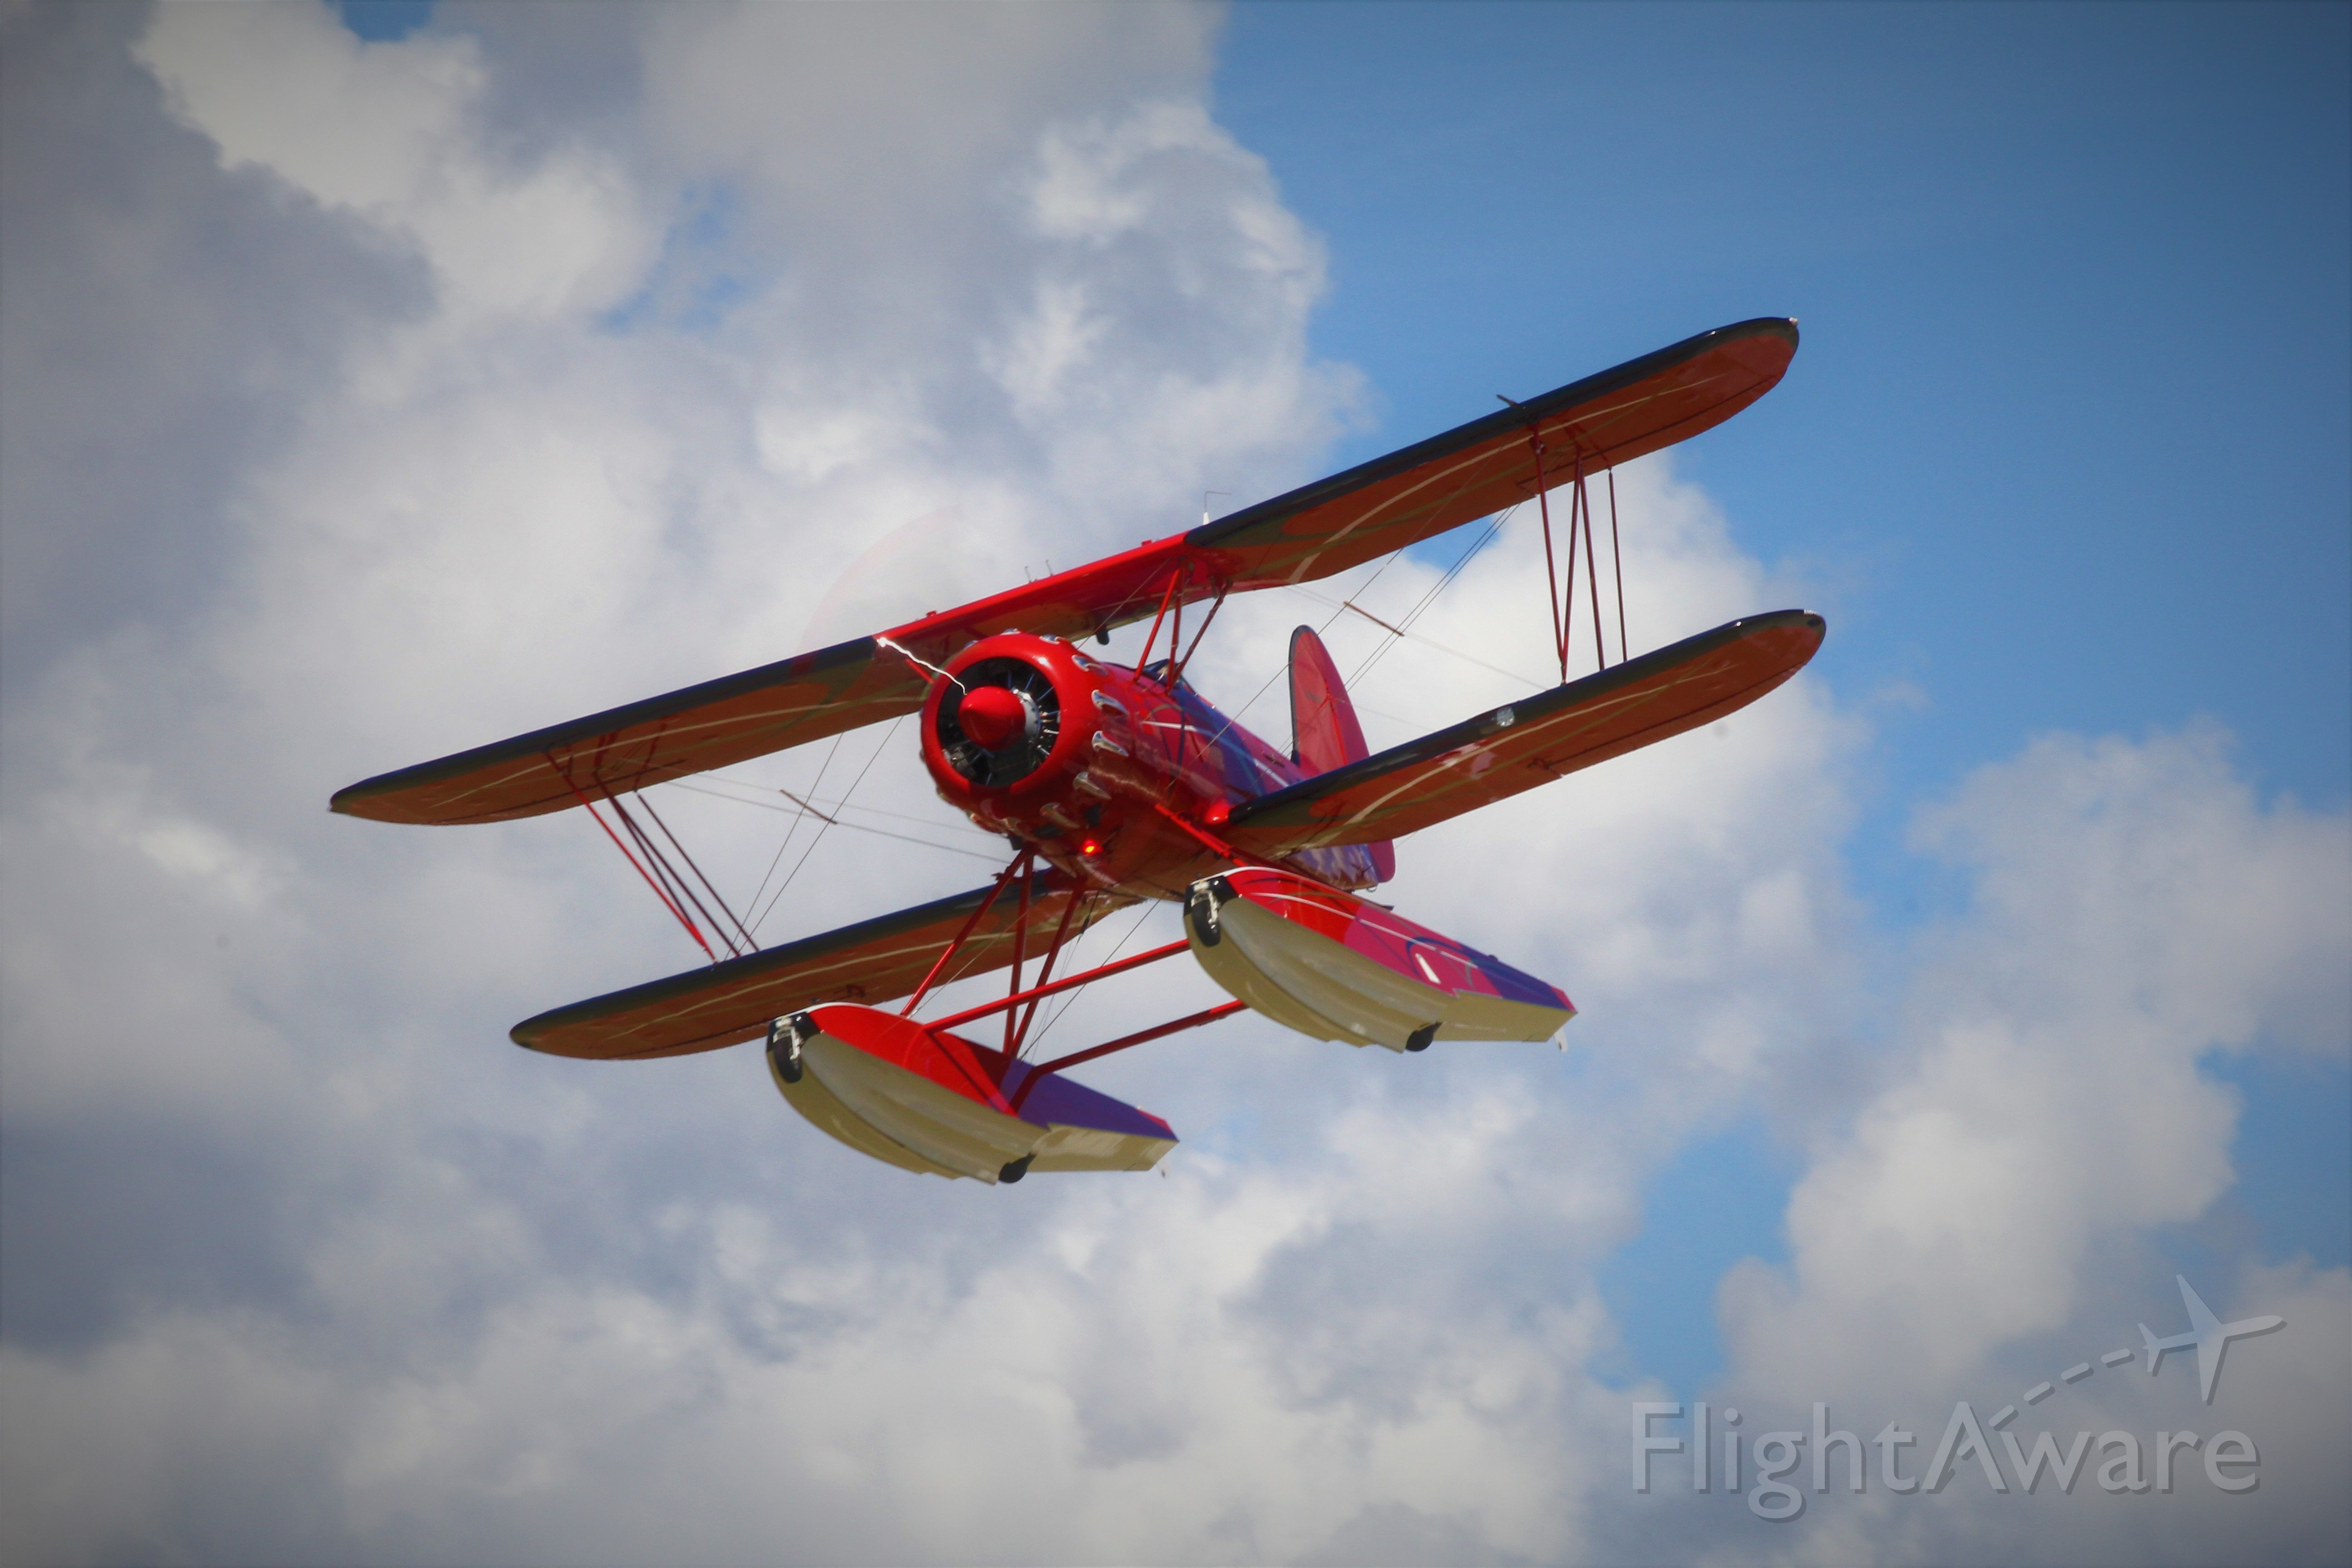 — — - Fly-By at Eagles Nest Seaplane Fly-In Feb 27 2021